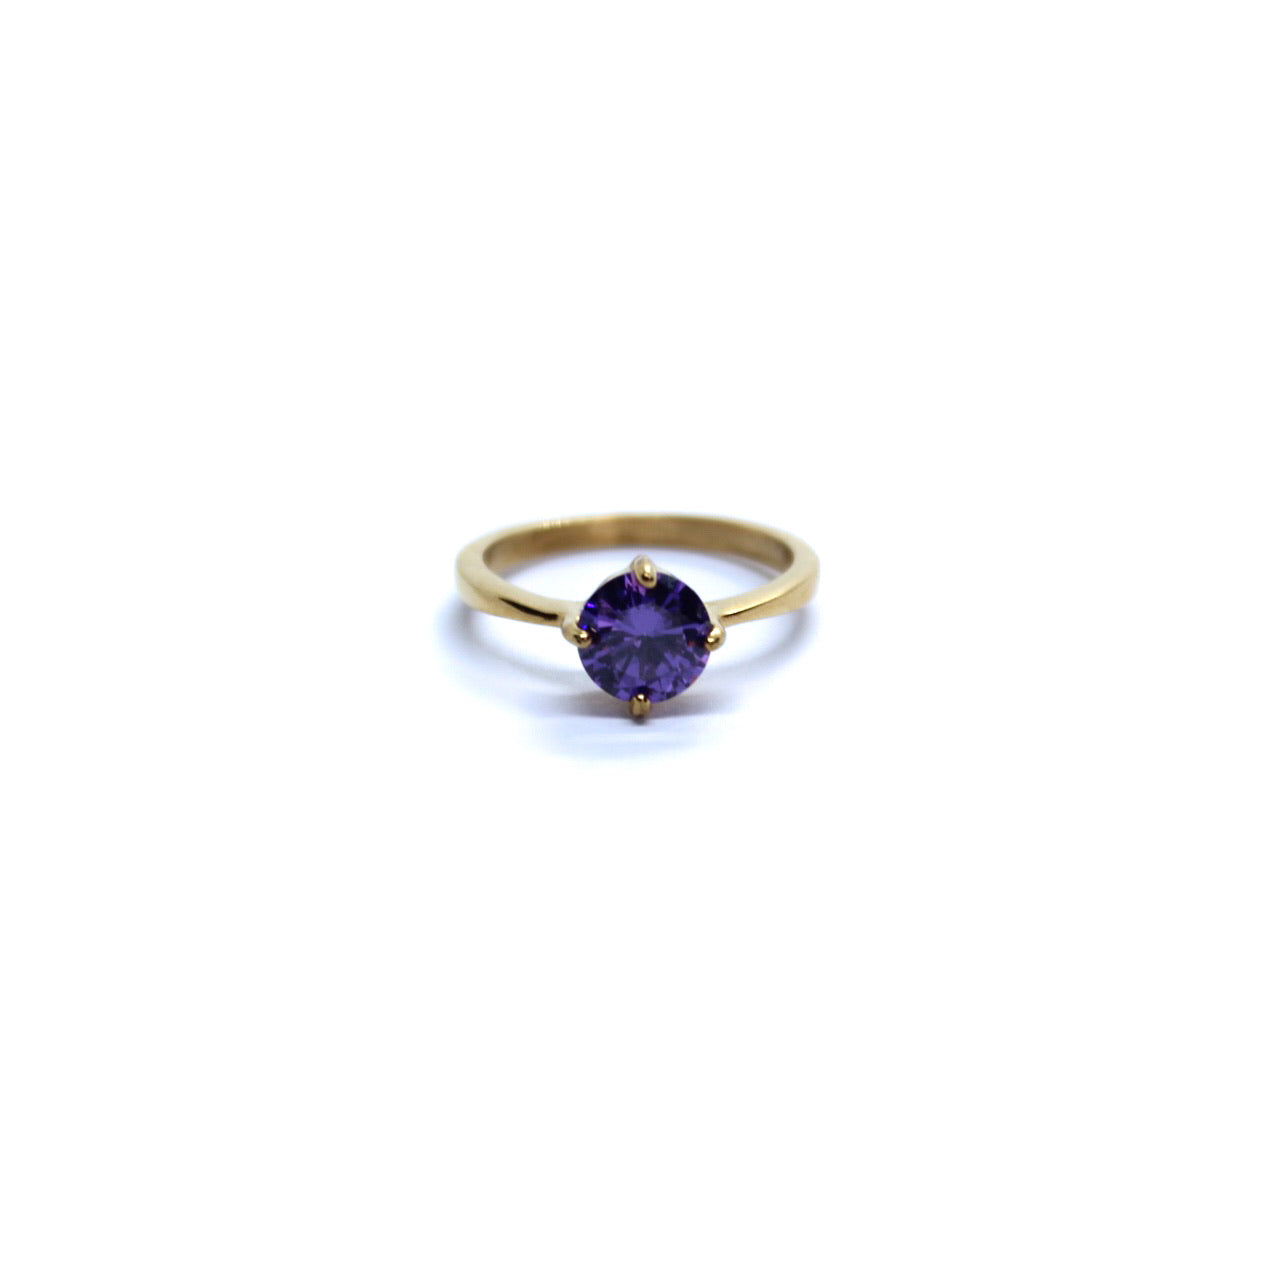 Exclusive Ring - Small Purple Stone